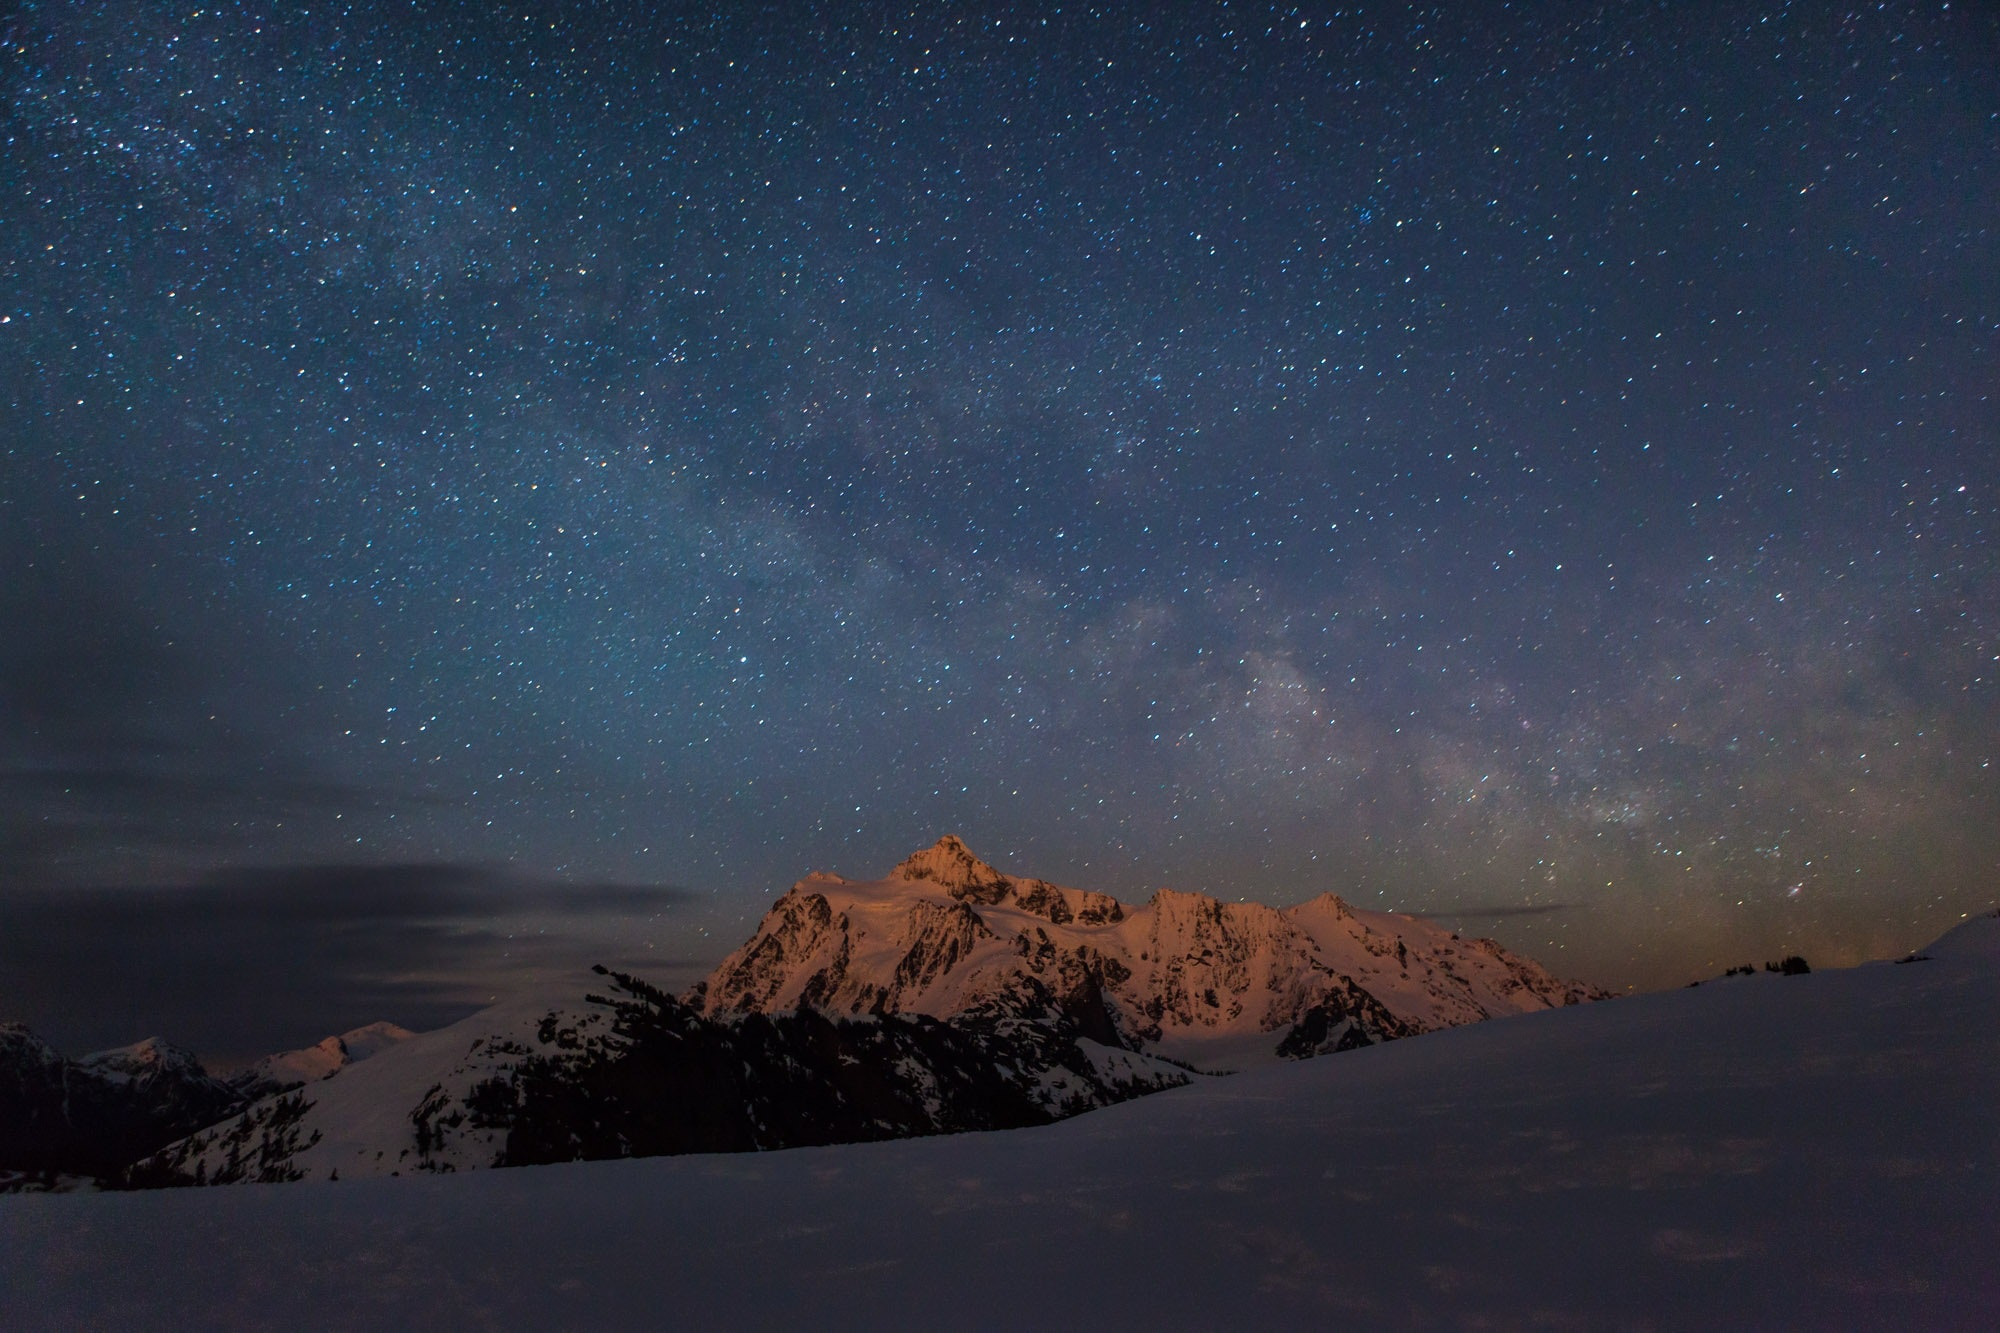 cold-milky-way-mountains-256096.jpg